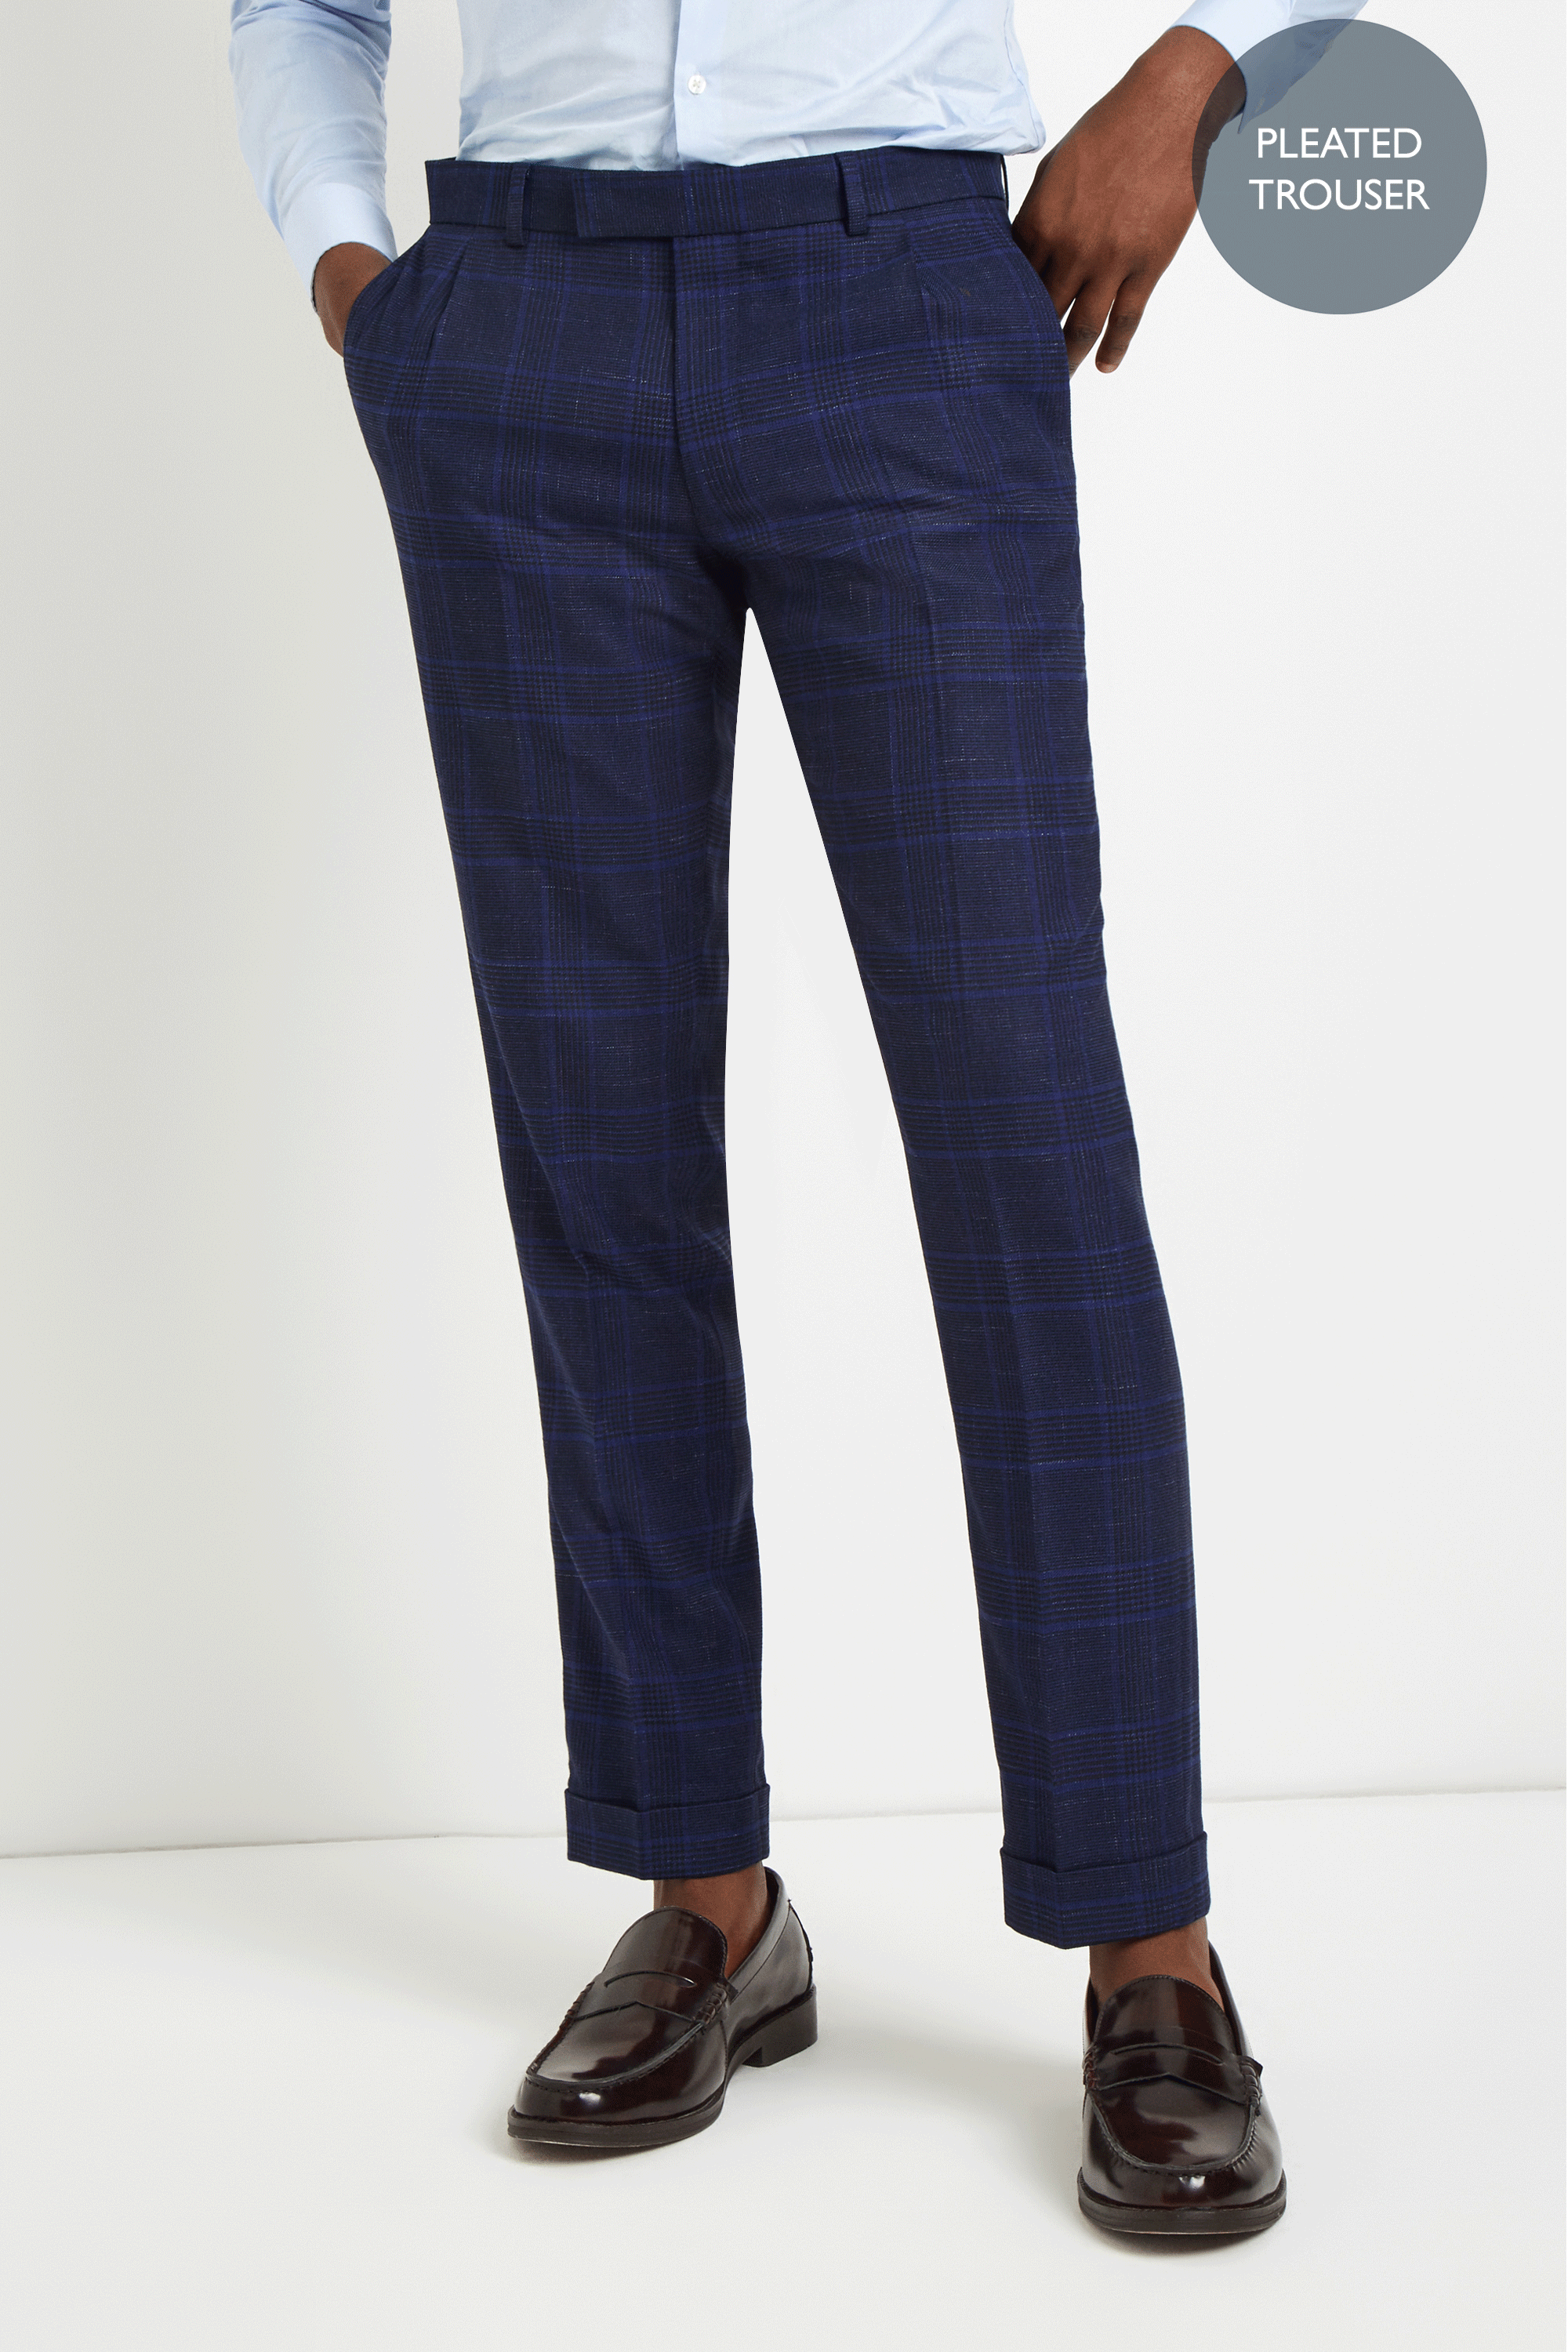 3997dbd21 Details about Moss London Mens Trousers Skinny Fit Blue Bold Check Pleated  Formal Pants